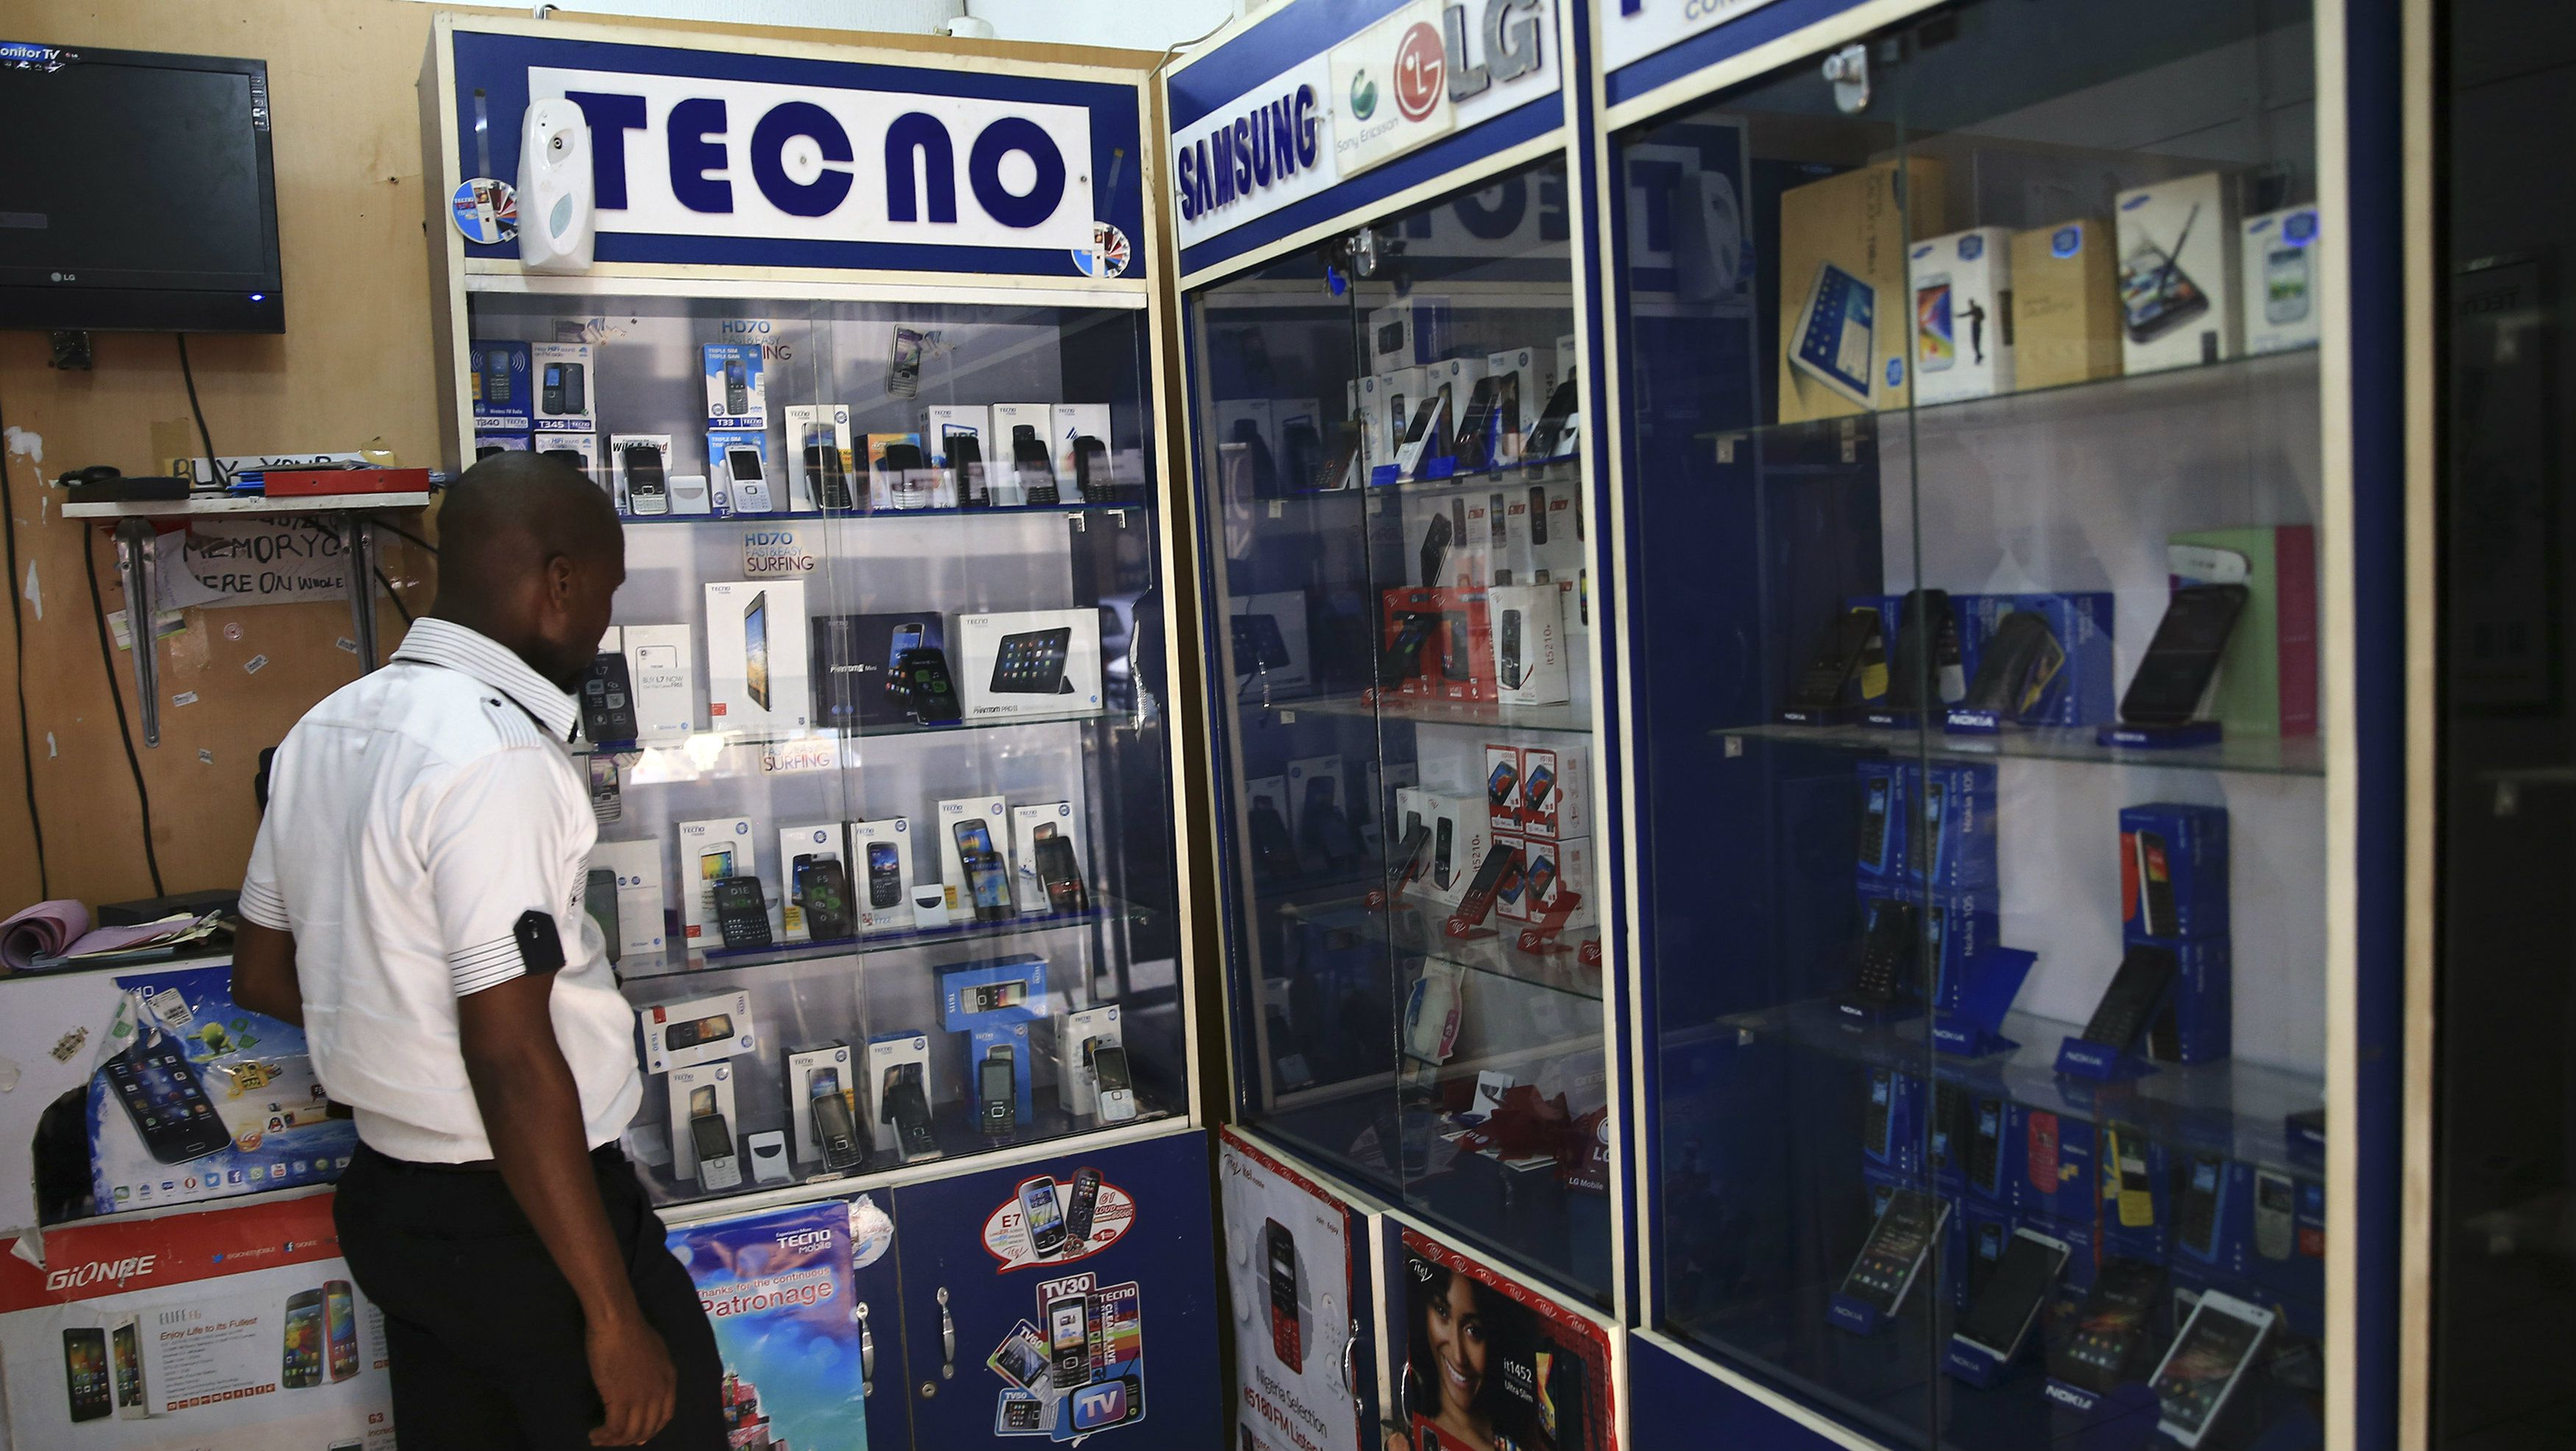 A man looks at smartphones on display at a shop at Wuse II business district in Abuja December 9, 2014. Nigeria is suffering from a plummeting currency, steep budget cuts, corruption scandals and diving oil prices; yet all this is unlikely to decide a tight race for the presidency. When the central bank devalued the naira last month to save foreign reserves, the impact was felt instantly on the streets. Nigeria imports 80 percent of what it consumes. Picture taken December 9, 2014. REUTERS/Afolabi Sotunde (NIGERIA - Tags: BUSINESS POLITICS)